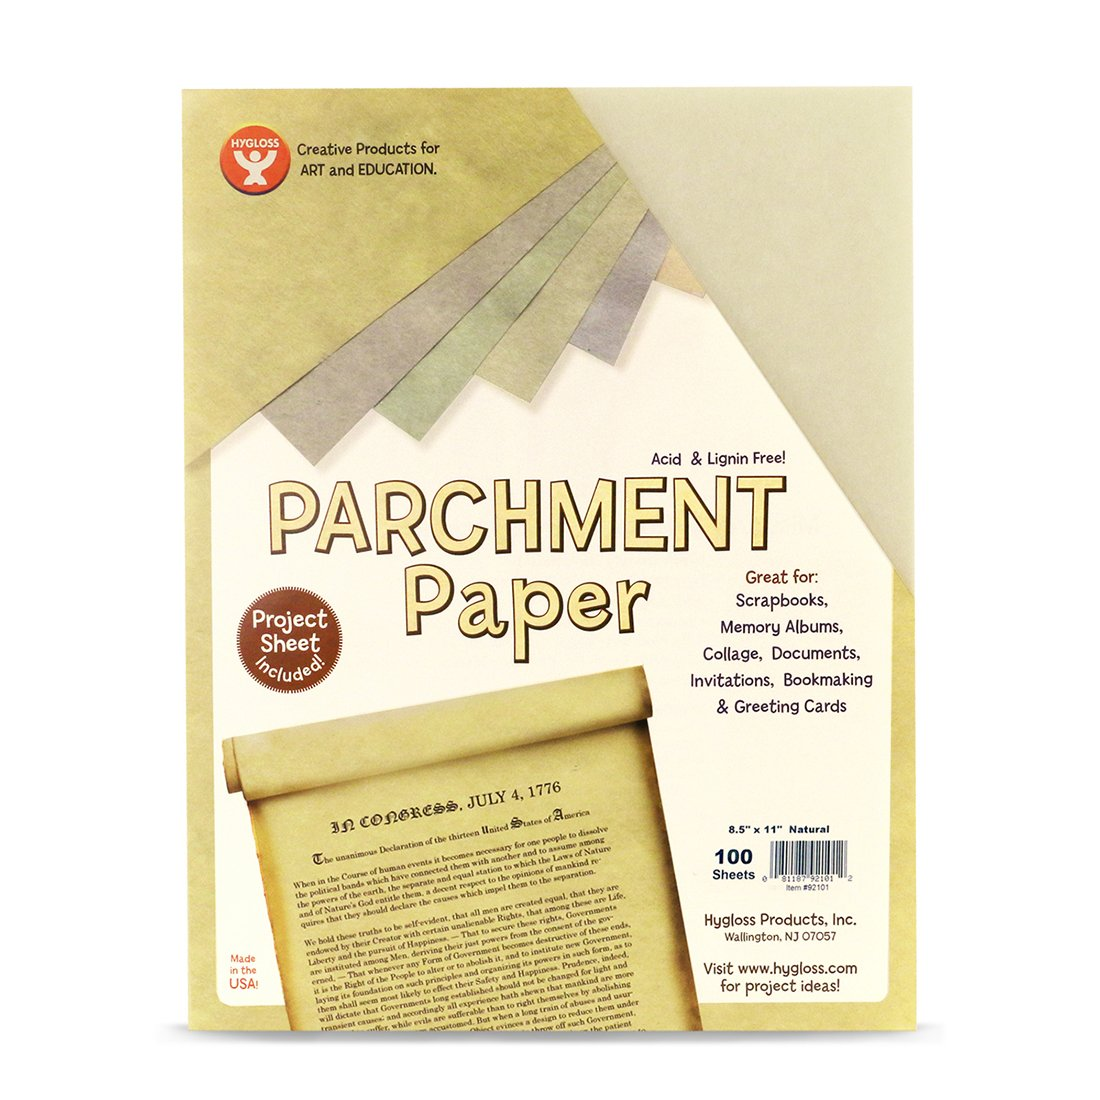 Hygloss Products Craft Parchment Paper Sheets - Printer Friendly, Made in USA - 8-1/2 x 11 Inches, Natural, 100 Pack by Hygloss